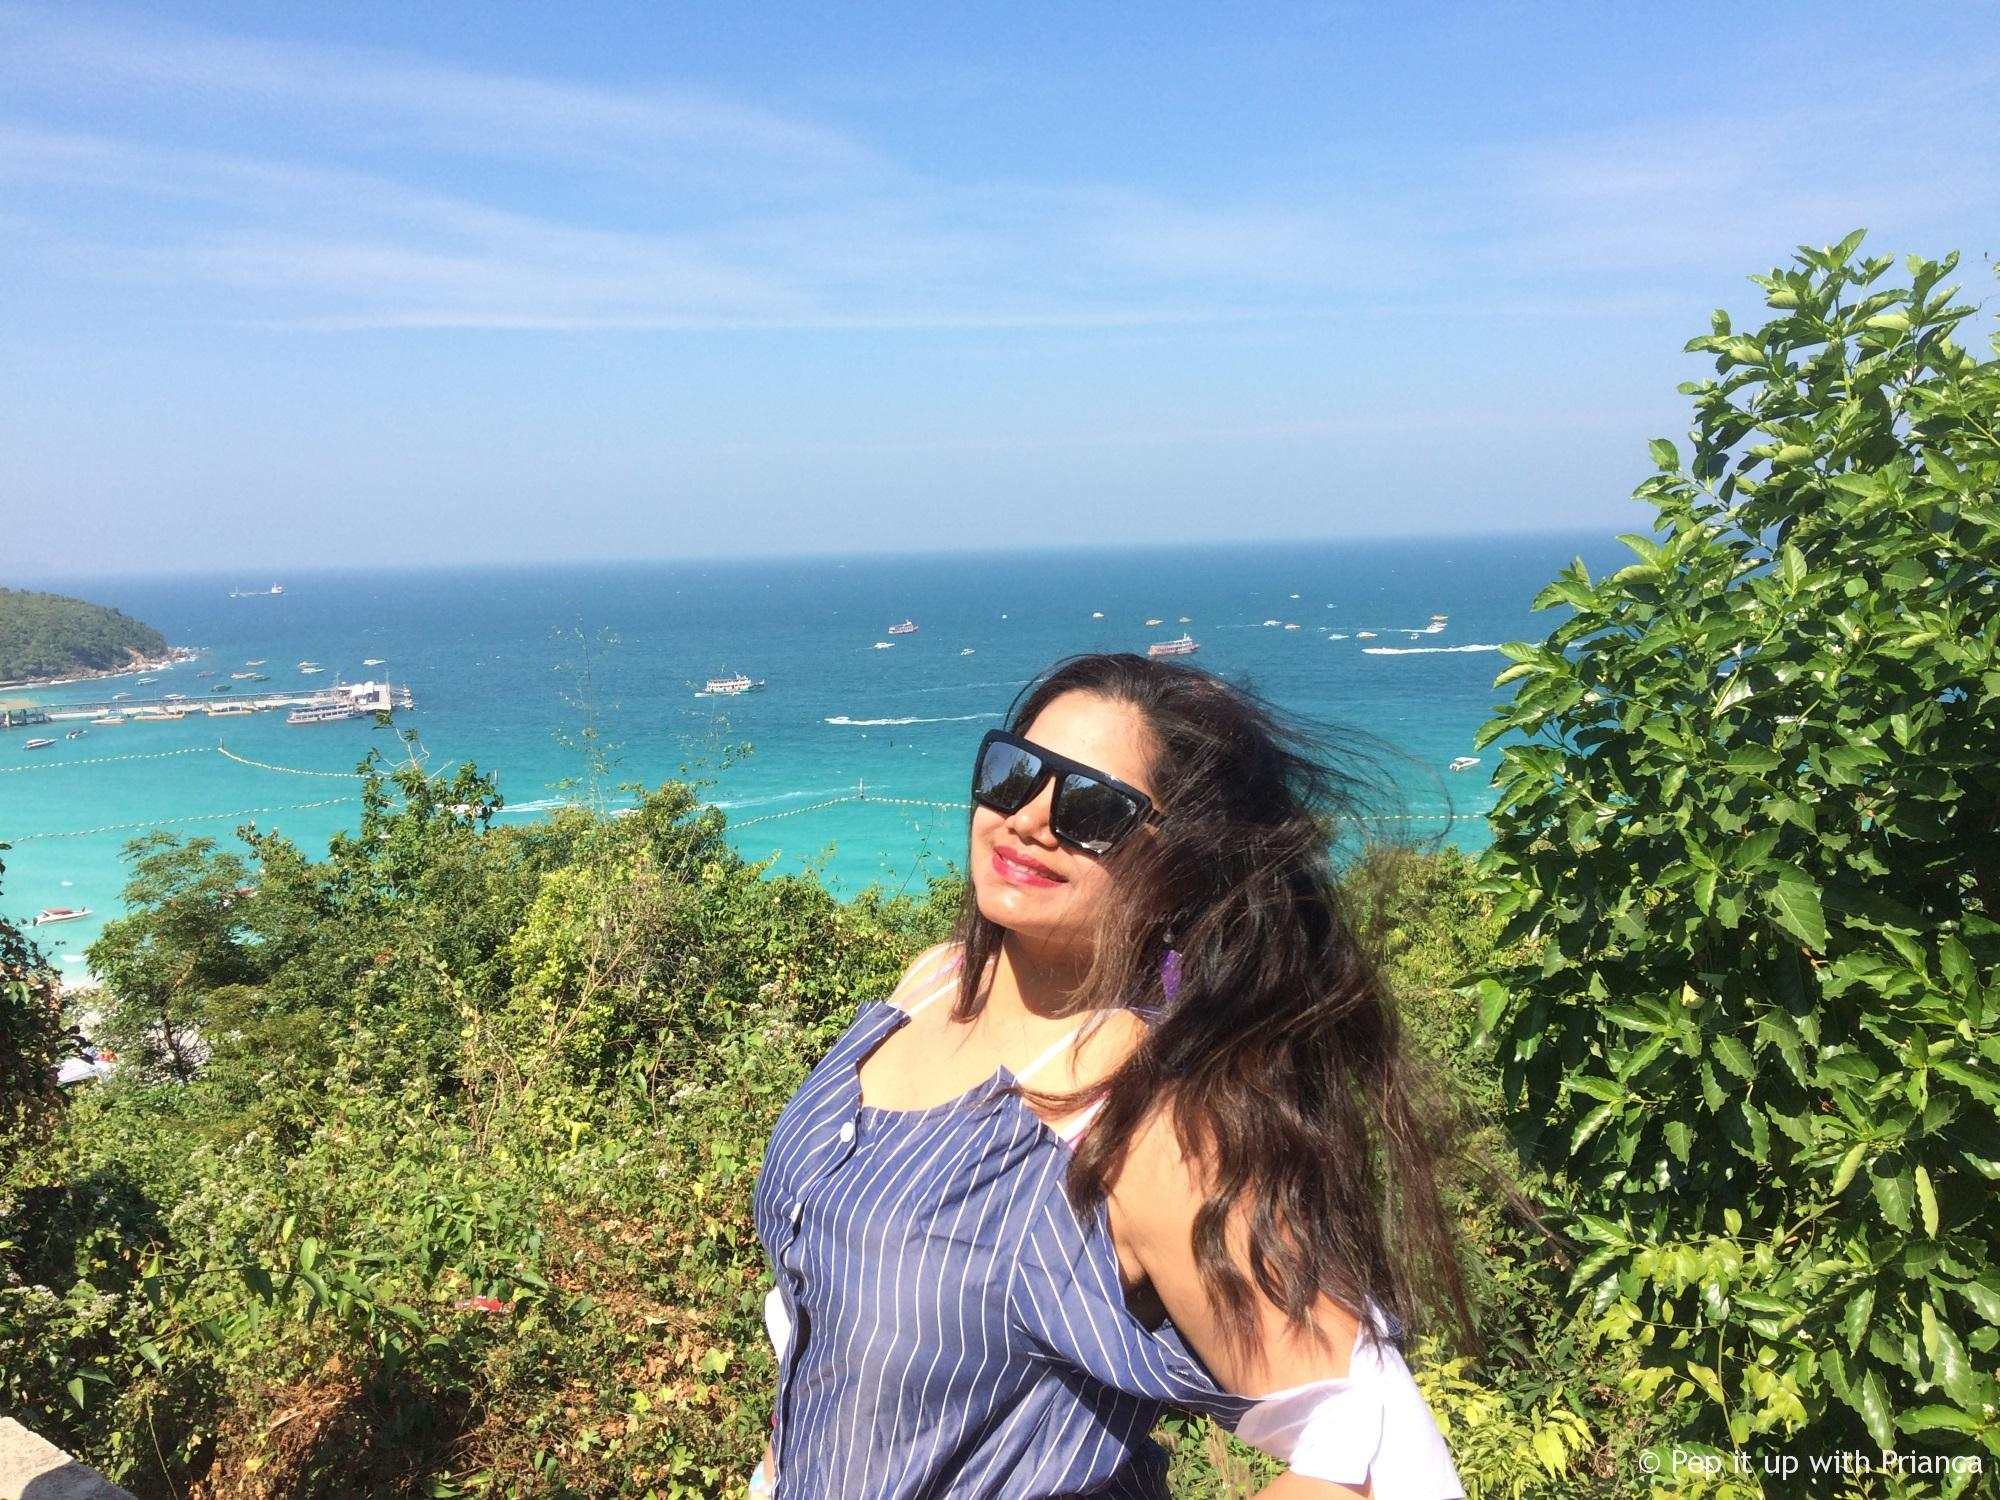 IMG 4412 - My Experience of a Day Tour to Koh Larn - Coral Island Near Pattaya